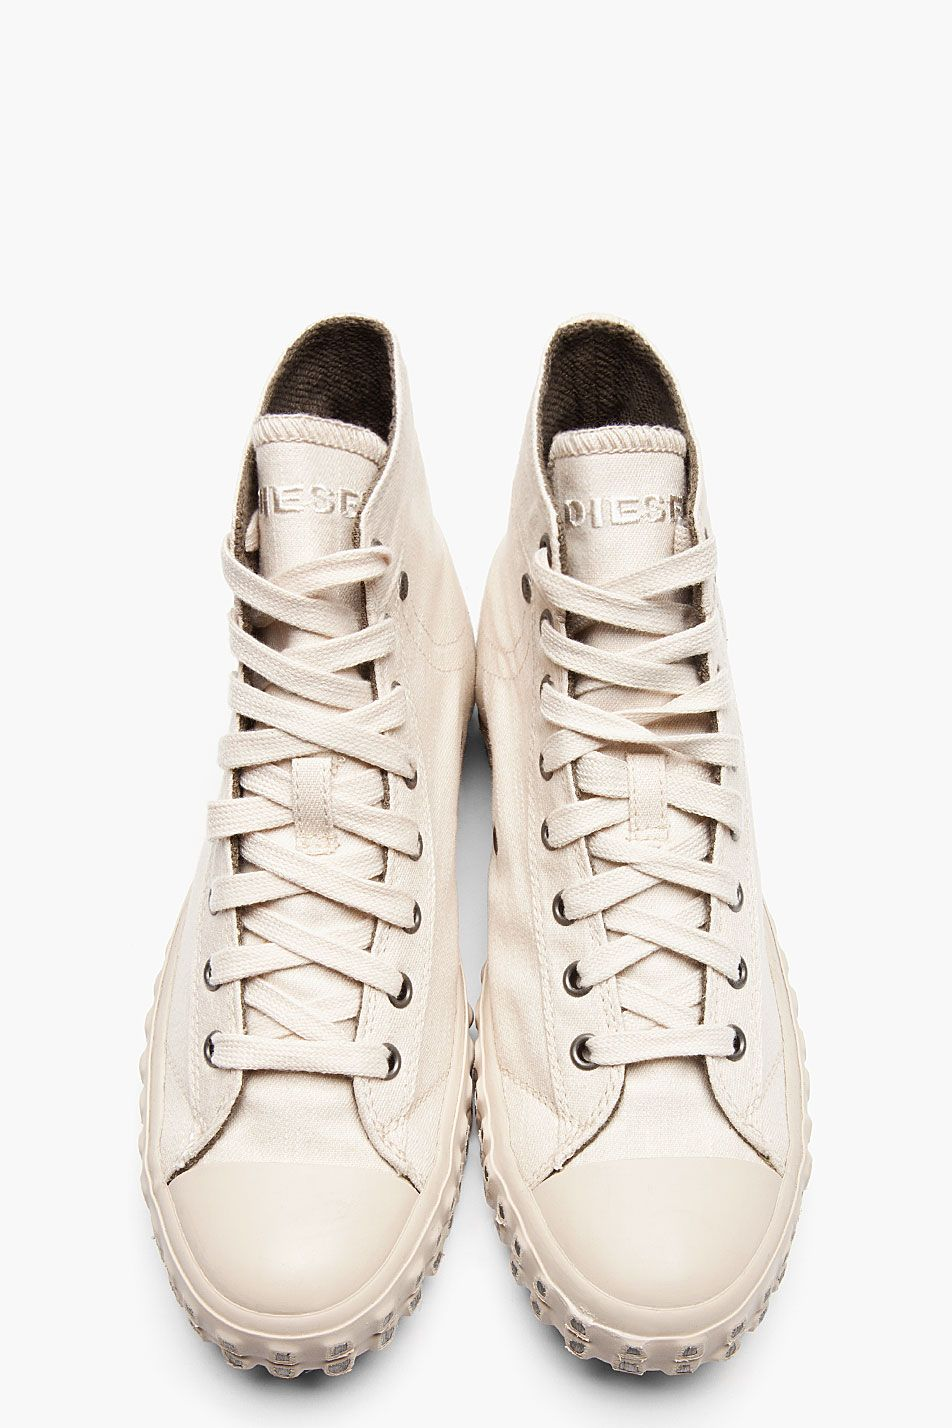 137128a96442 DIESEL    Sandshell EXPOSURE I High Top Sneakers 32001M050004 High top  textile sneakers in off-white.